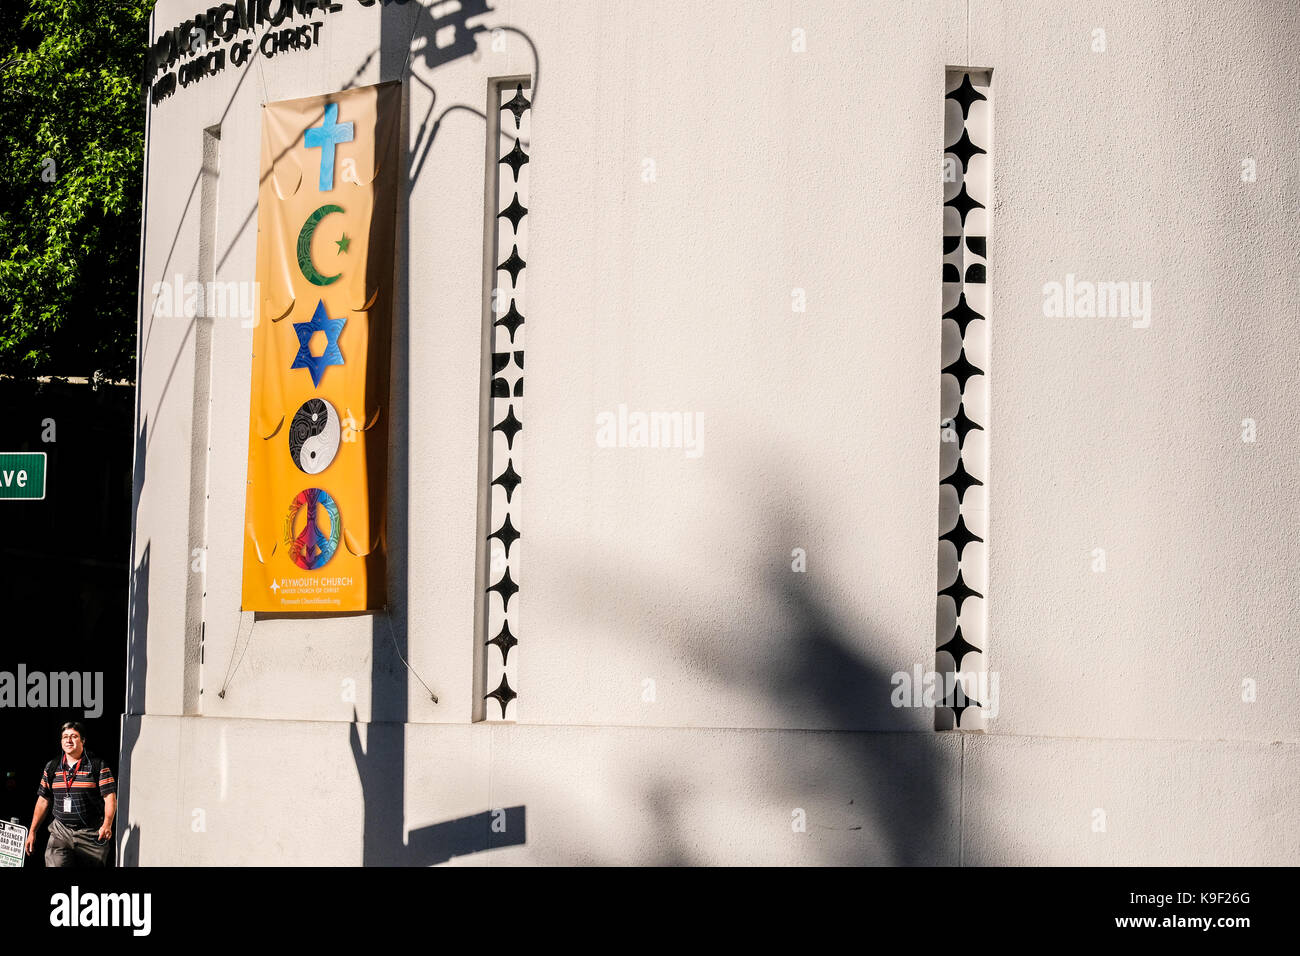 A banner of coexist symbols of Christian Islam Judaism Buddhism Peace - Stock Image